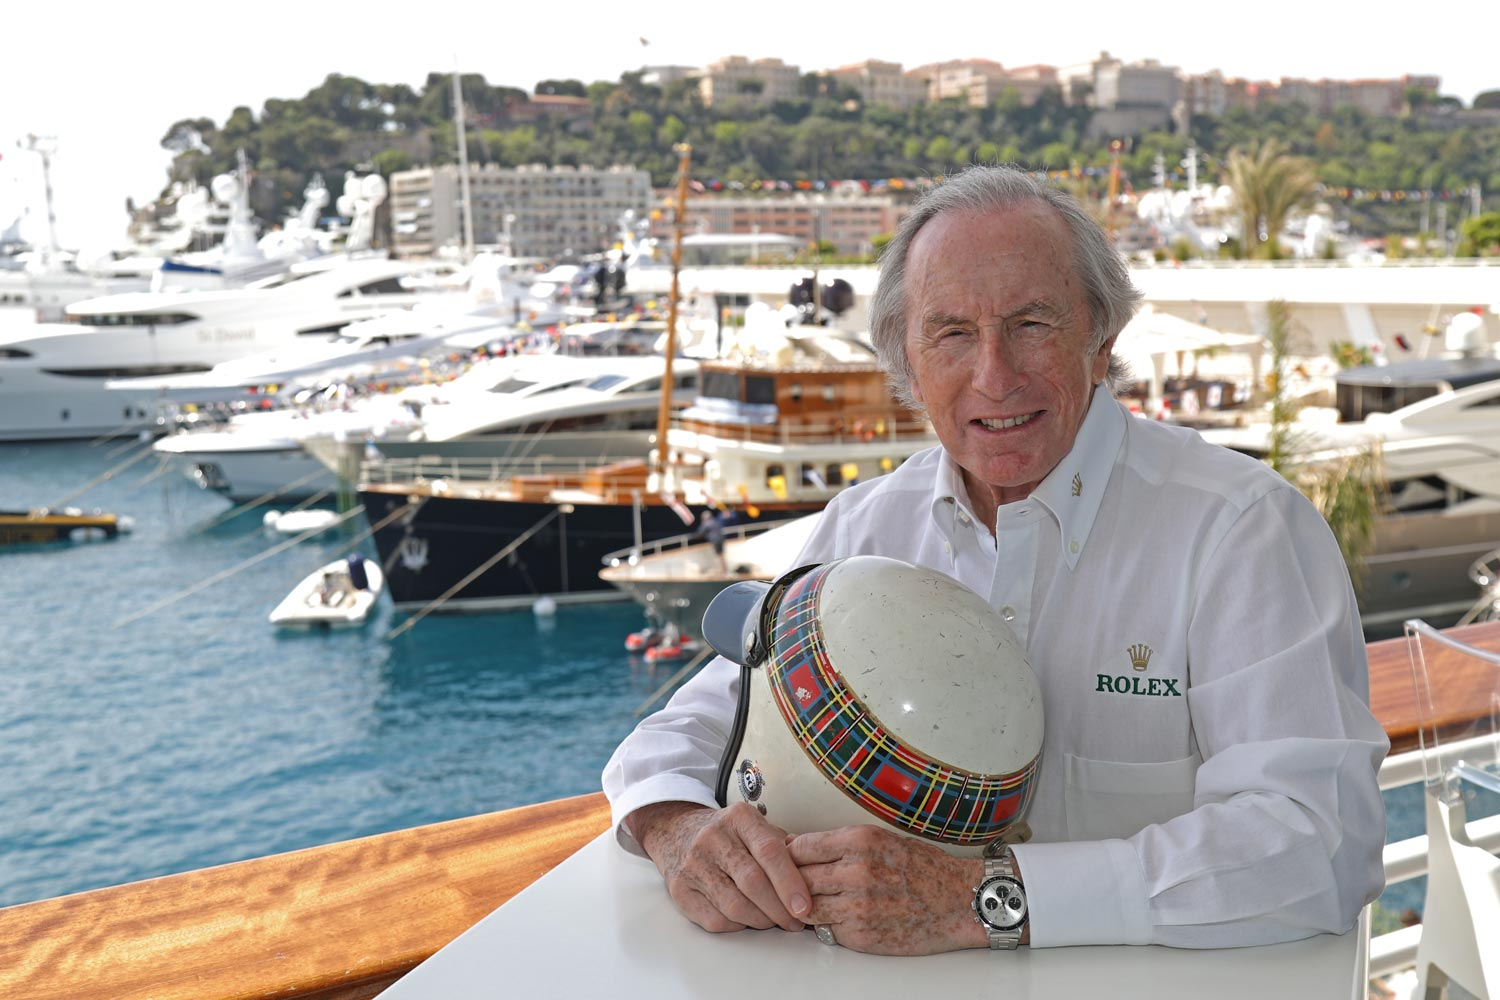 Sir Jackie Stewart wearing his 1971 Rolex Daytona